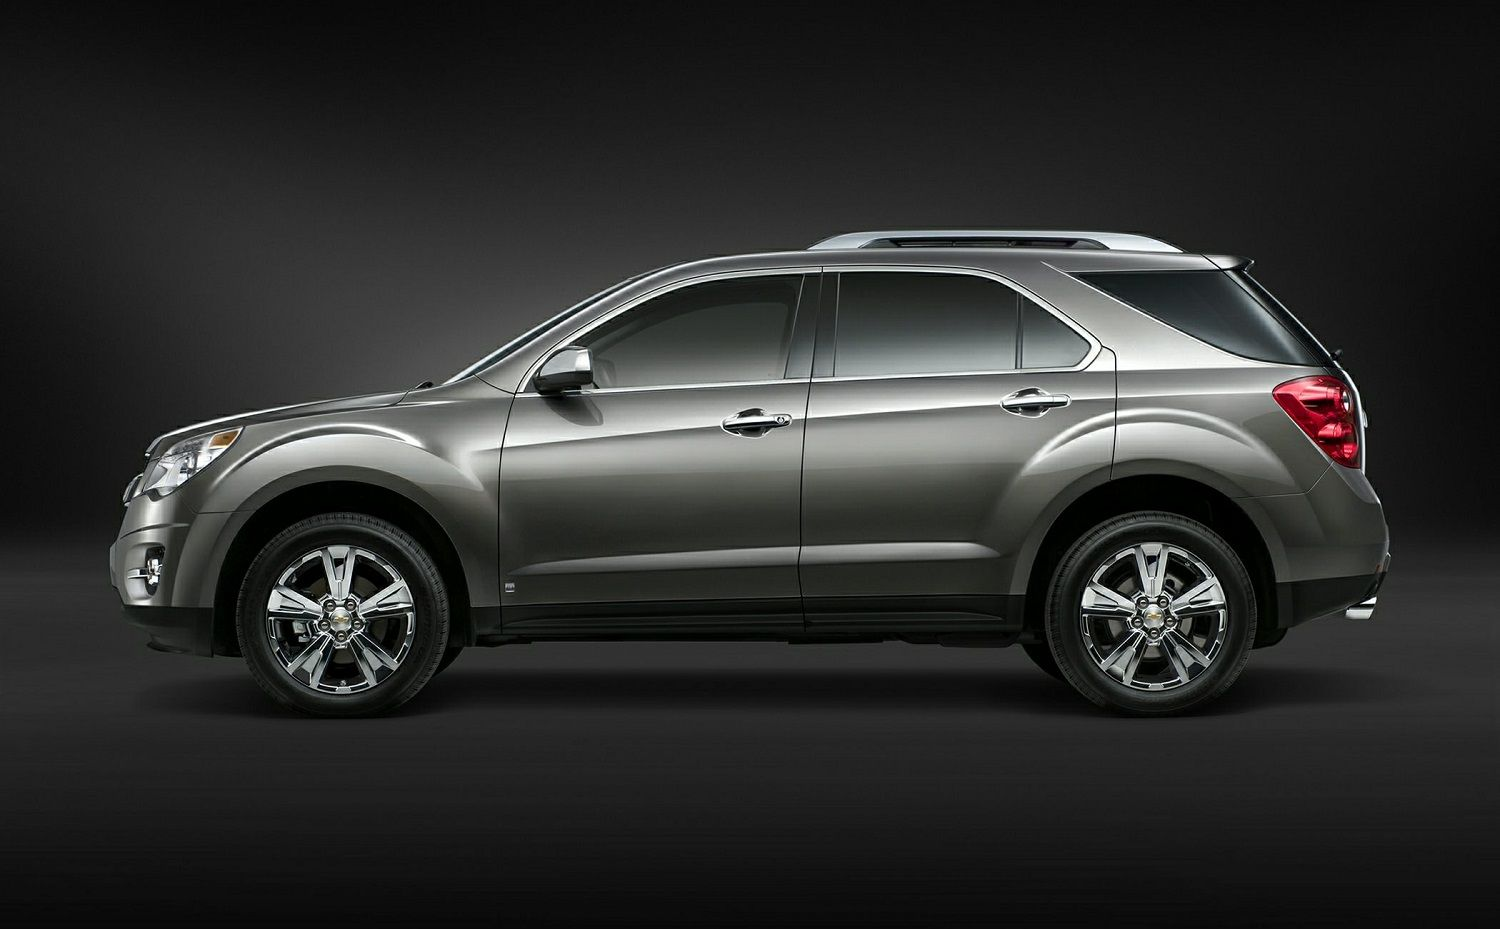 Chevy equinox crossover suv for sale today you can get great chevy equinox crossover suv for sale today you can get great prices on chevrolet equinox mid sciox Choice Image